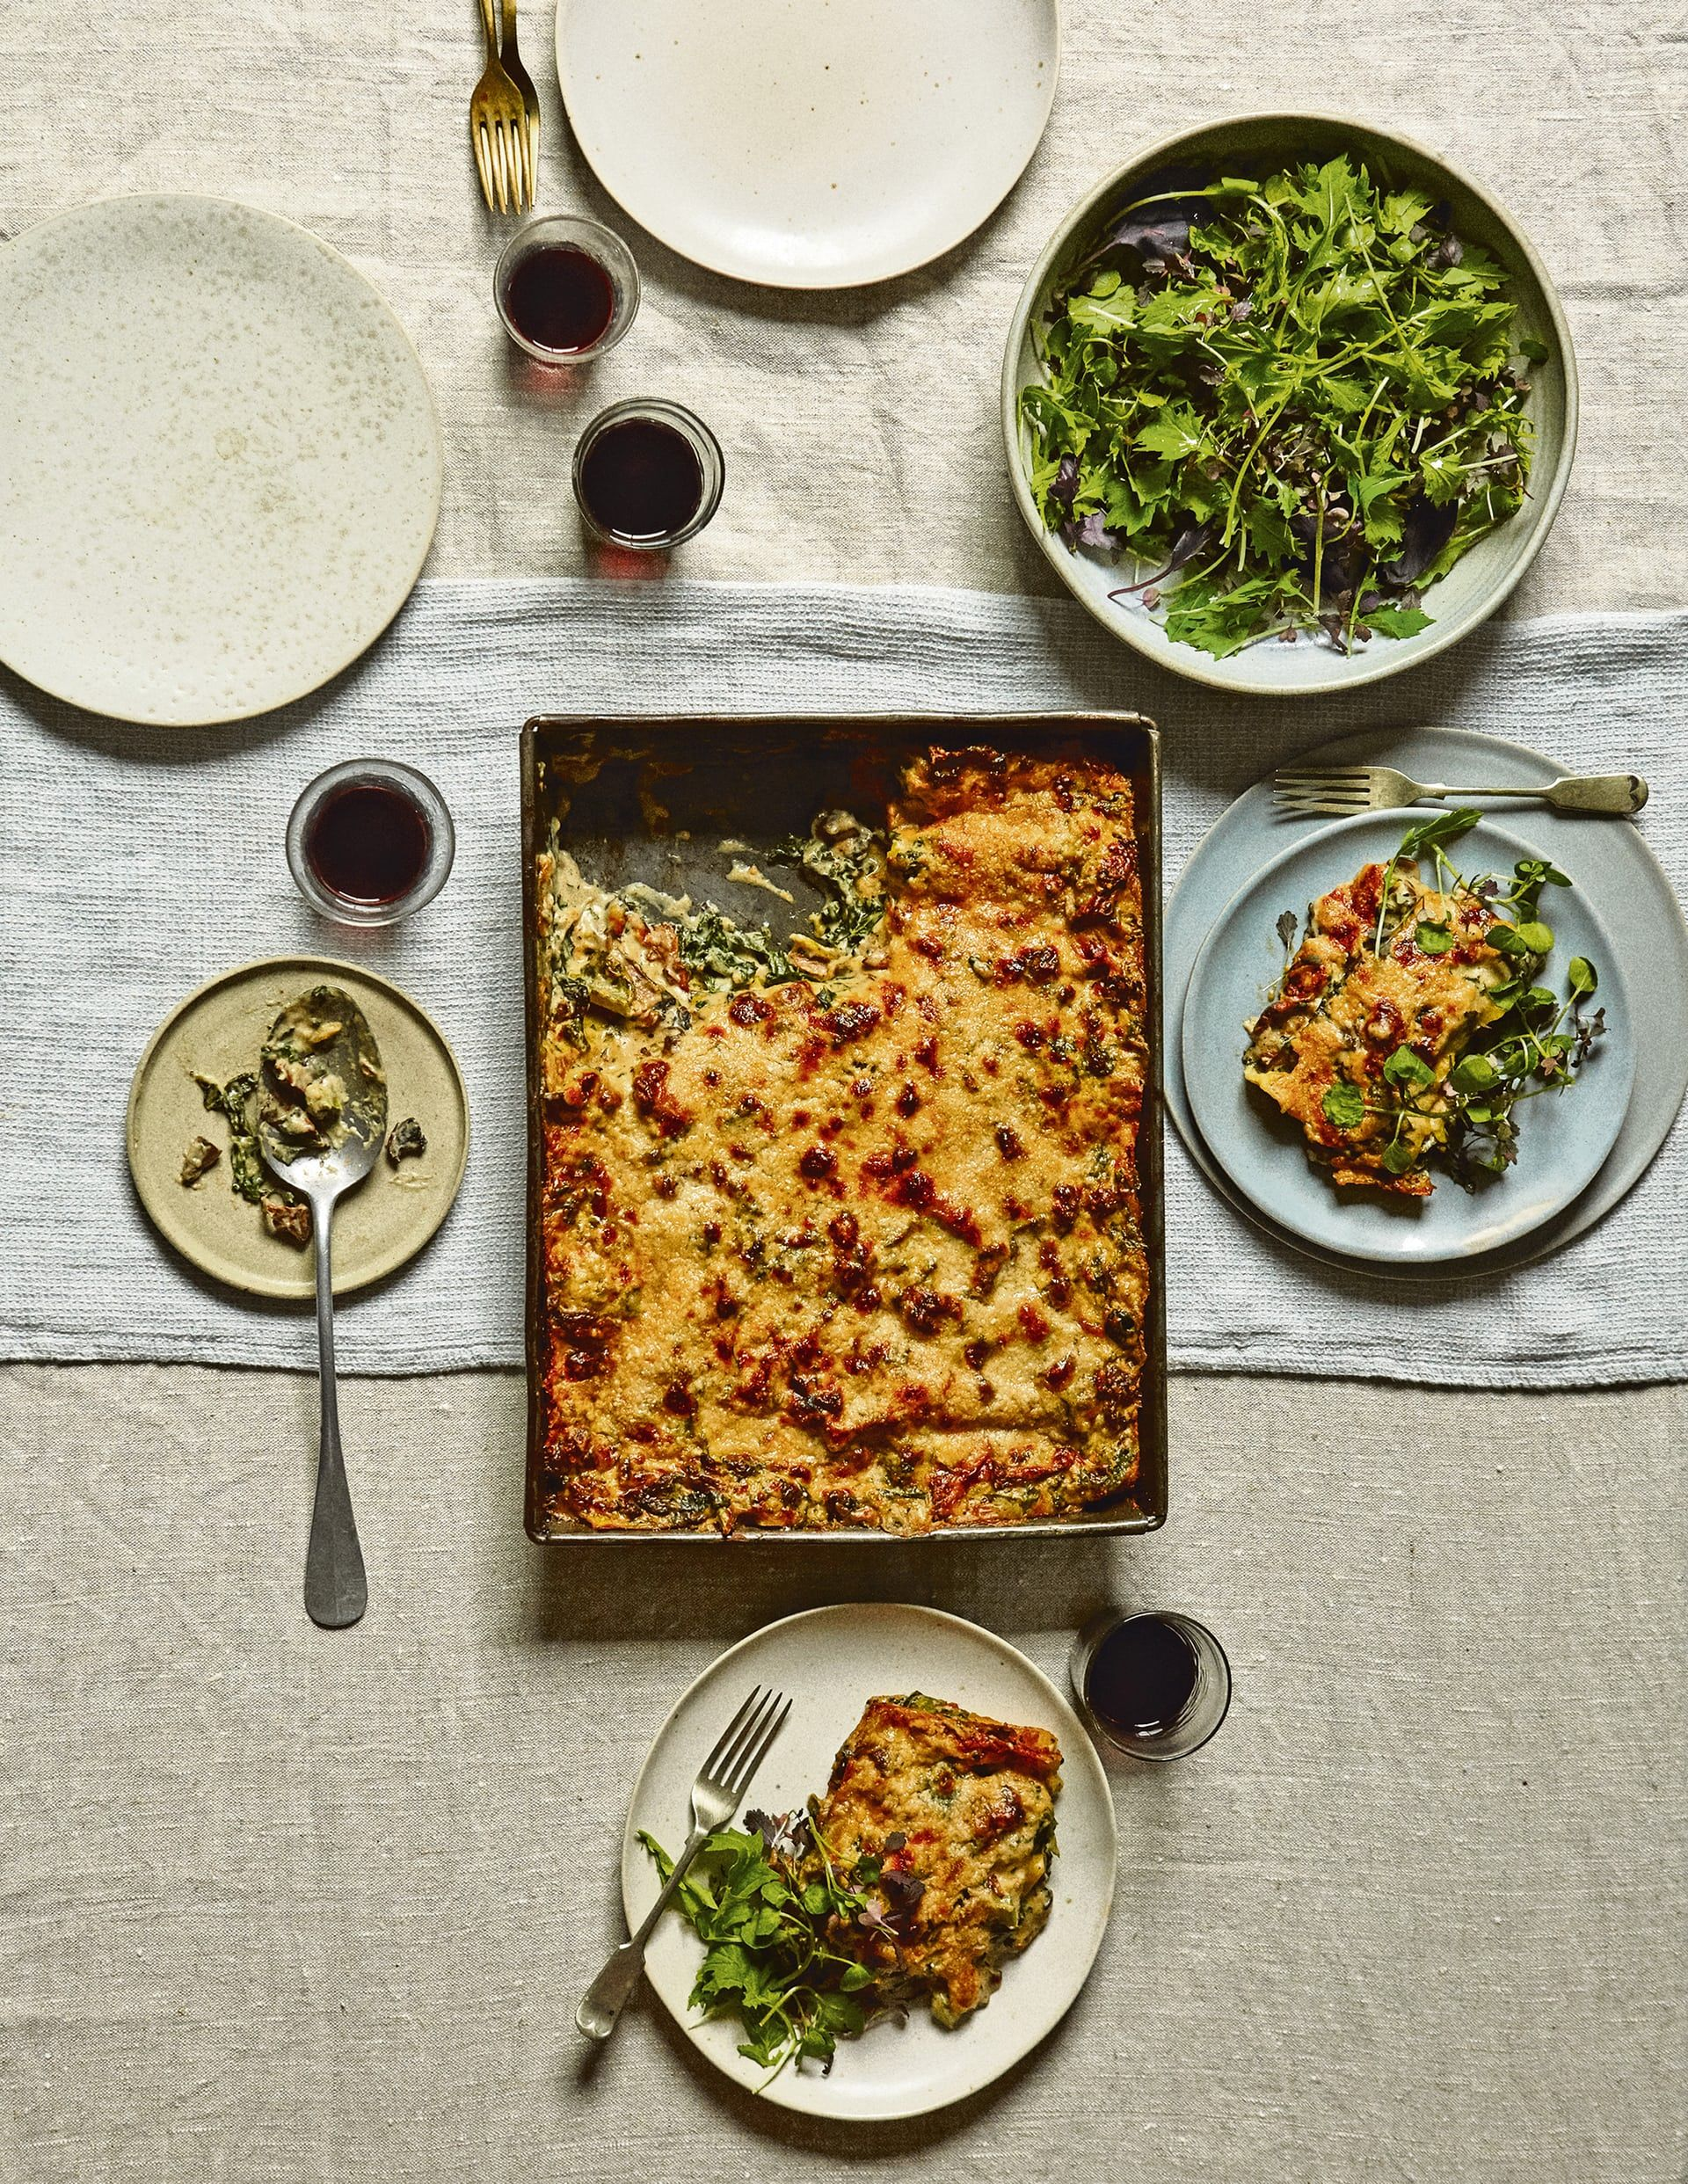 Anna joness recipes from a modern cooks year pinterest recipes anna joness recipes from a modern cooks year book extract life and style the guardian forumfinder Images